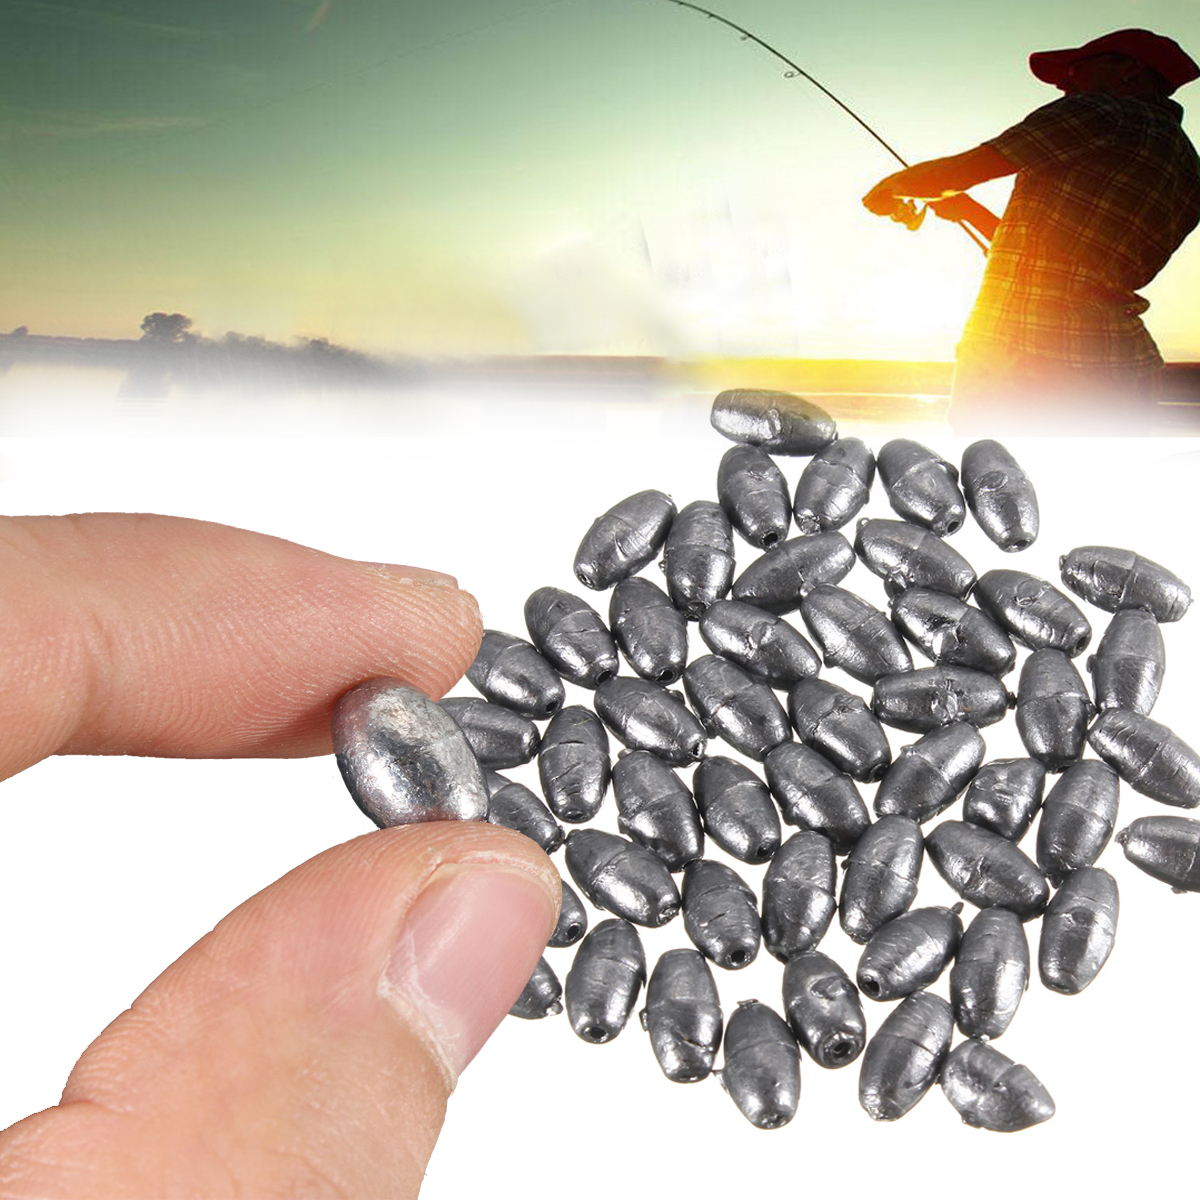 50pcs Olive Shape Pure Lead Sinkers Fishing Sinker Fishing Tackle for Saltwater Bass Fishing 0.2g 0.35g 1g 2g 3g 4g 5g 6g 8g цена 2017